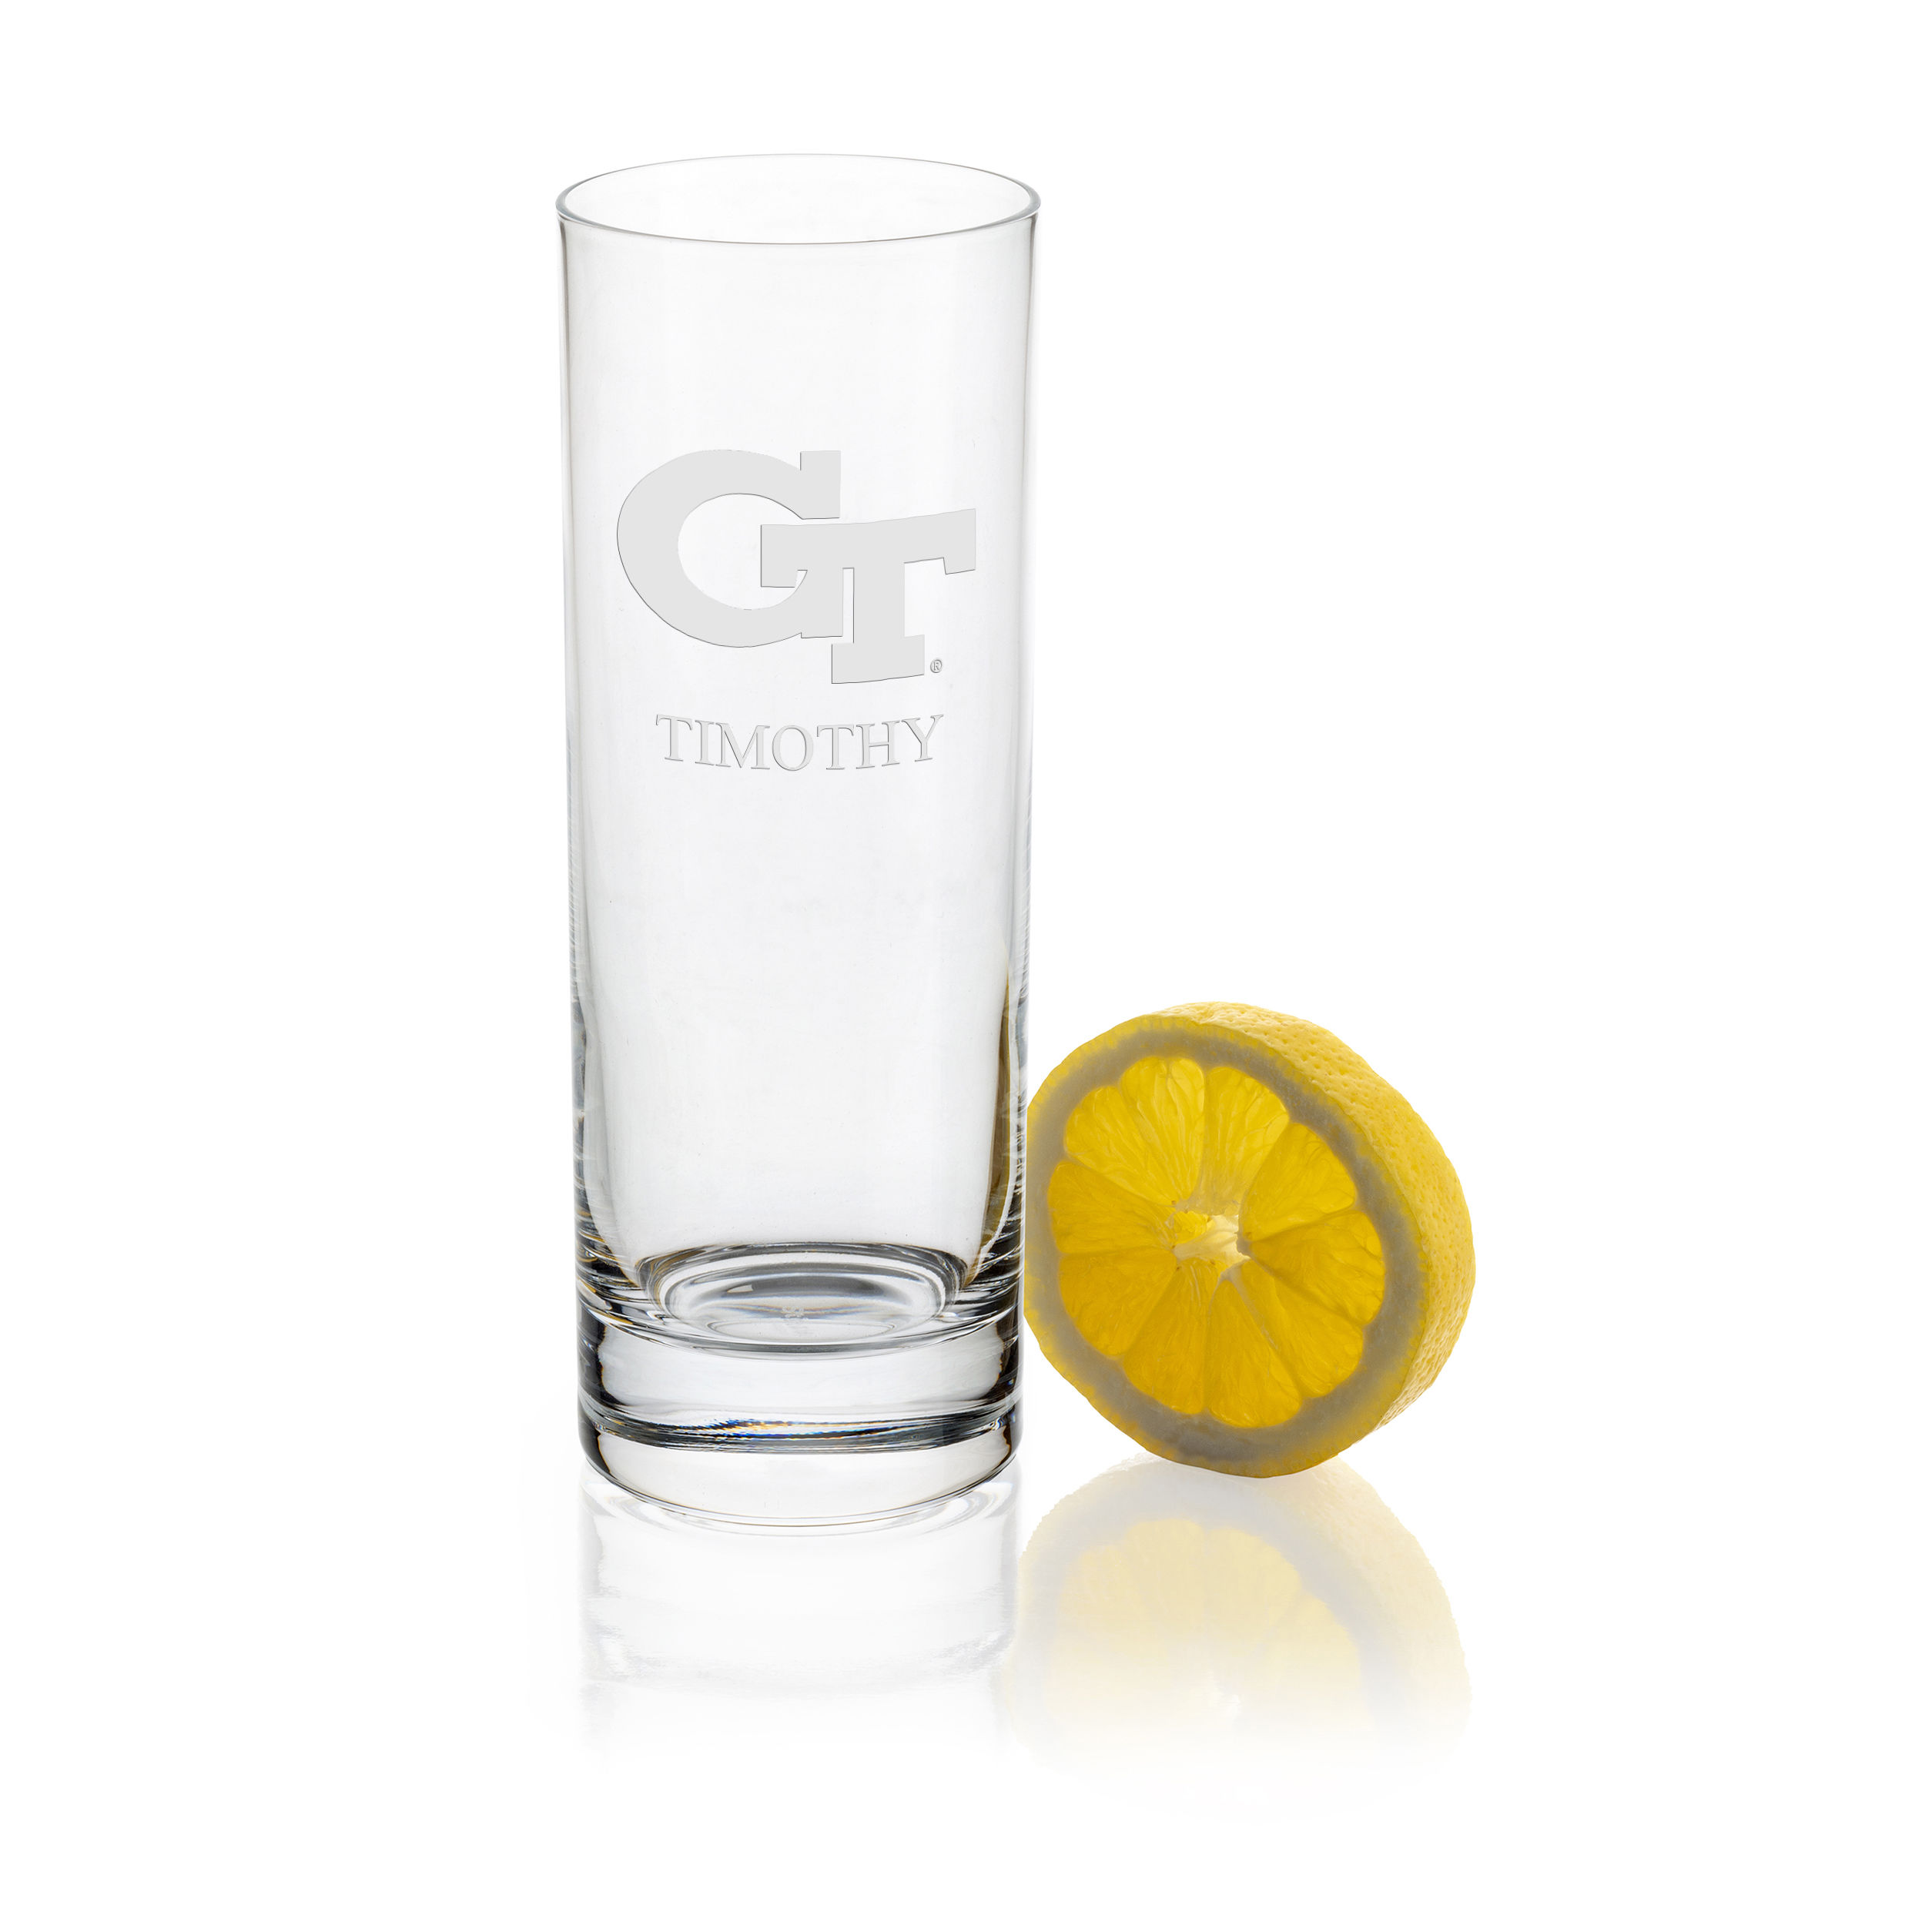 Georgia Tech Iced Beverage Glasses - Set of 4